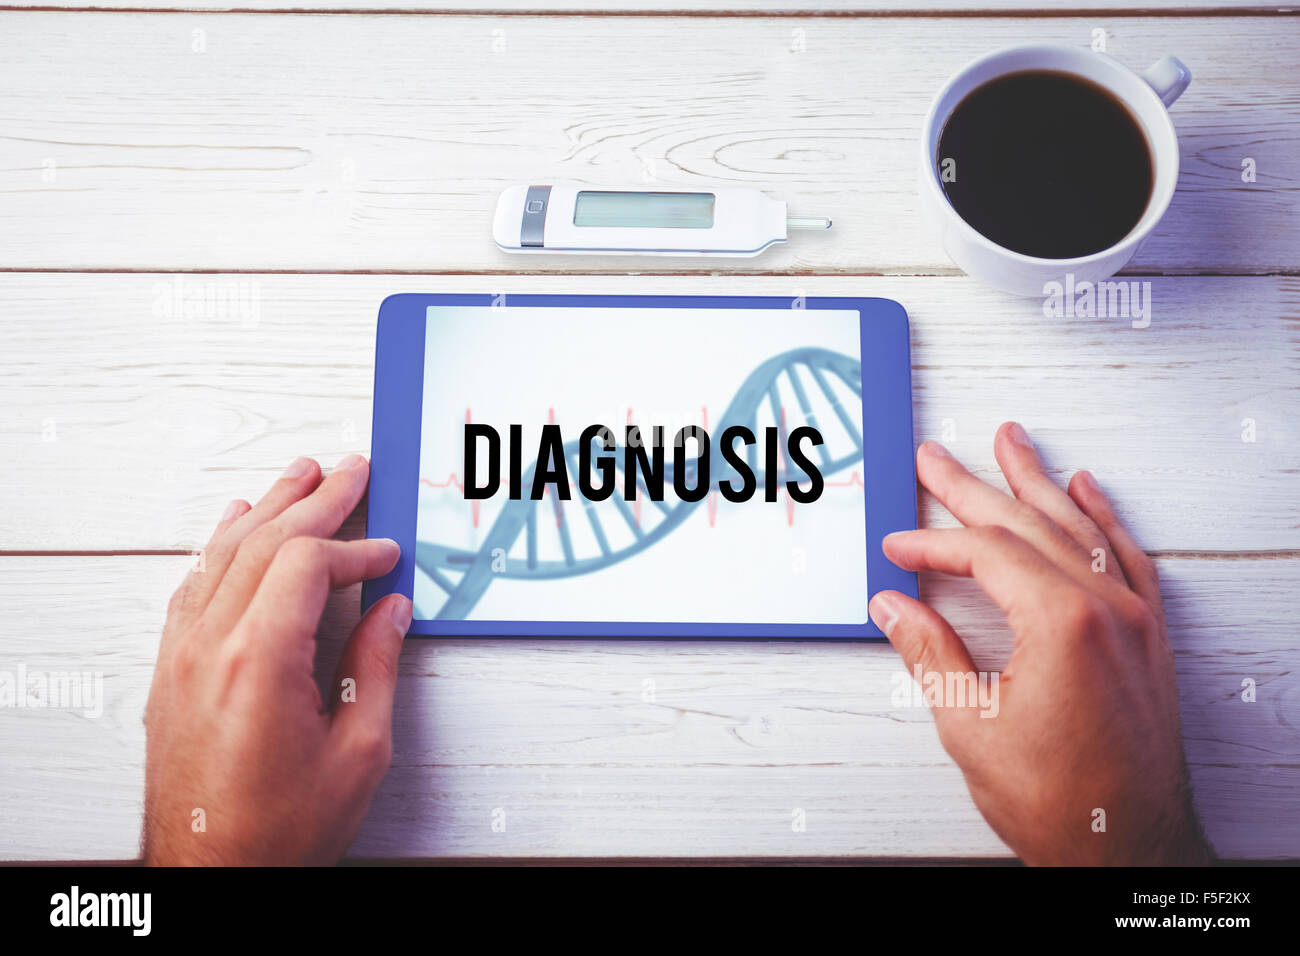 Diagnosis against blue medical background with dna and ecg - Stock Image